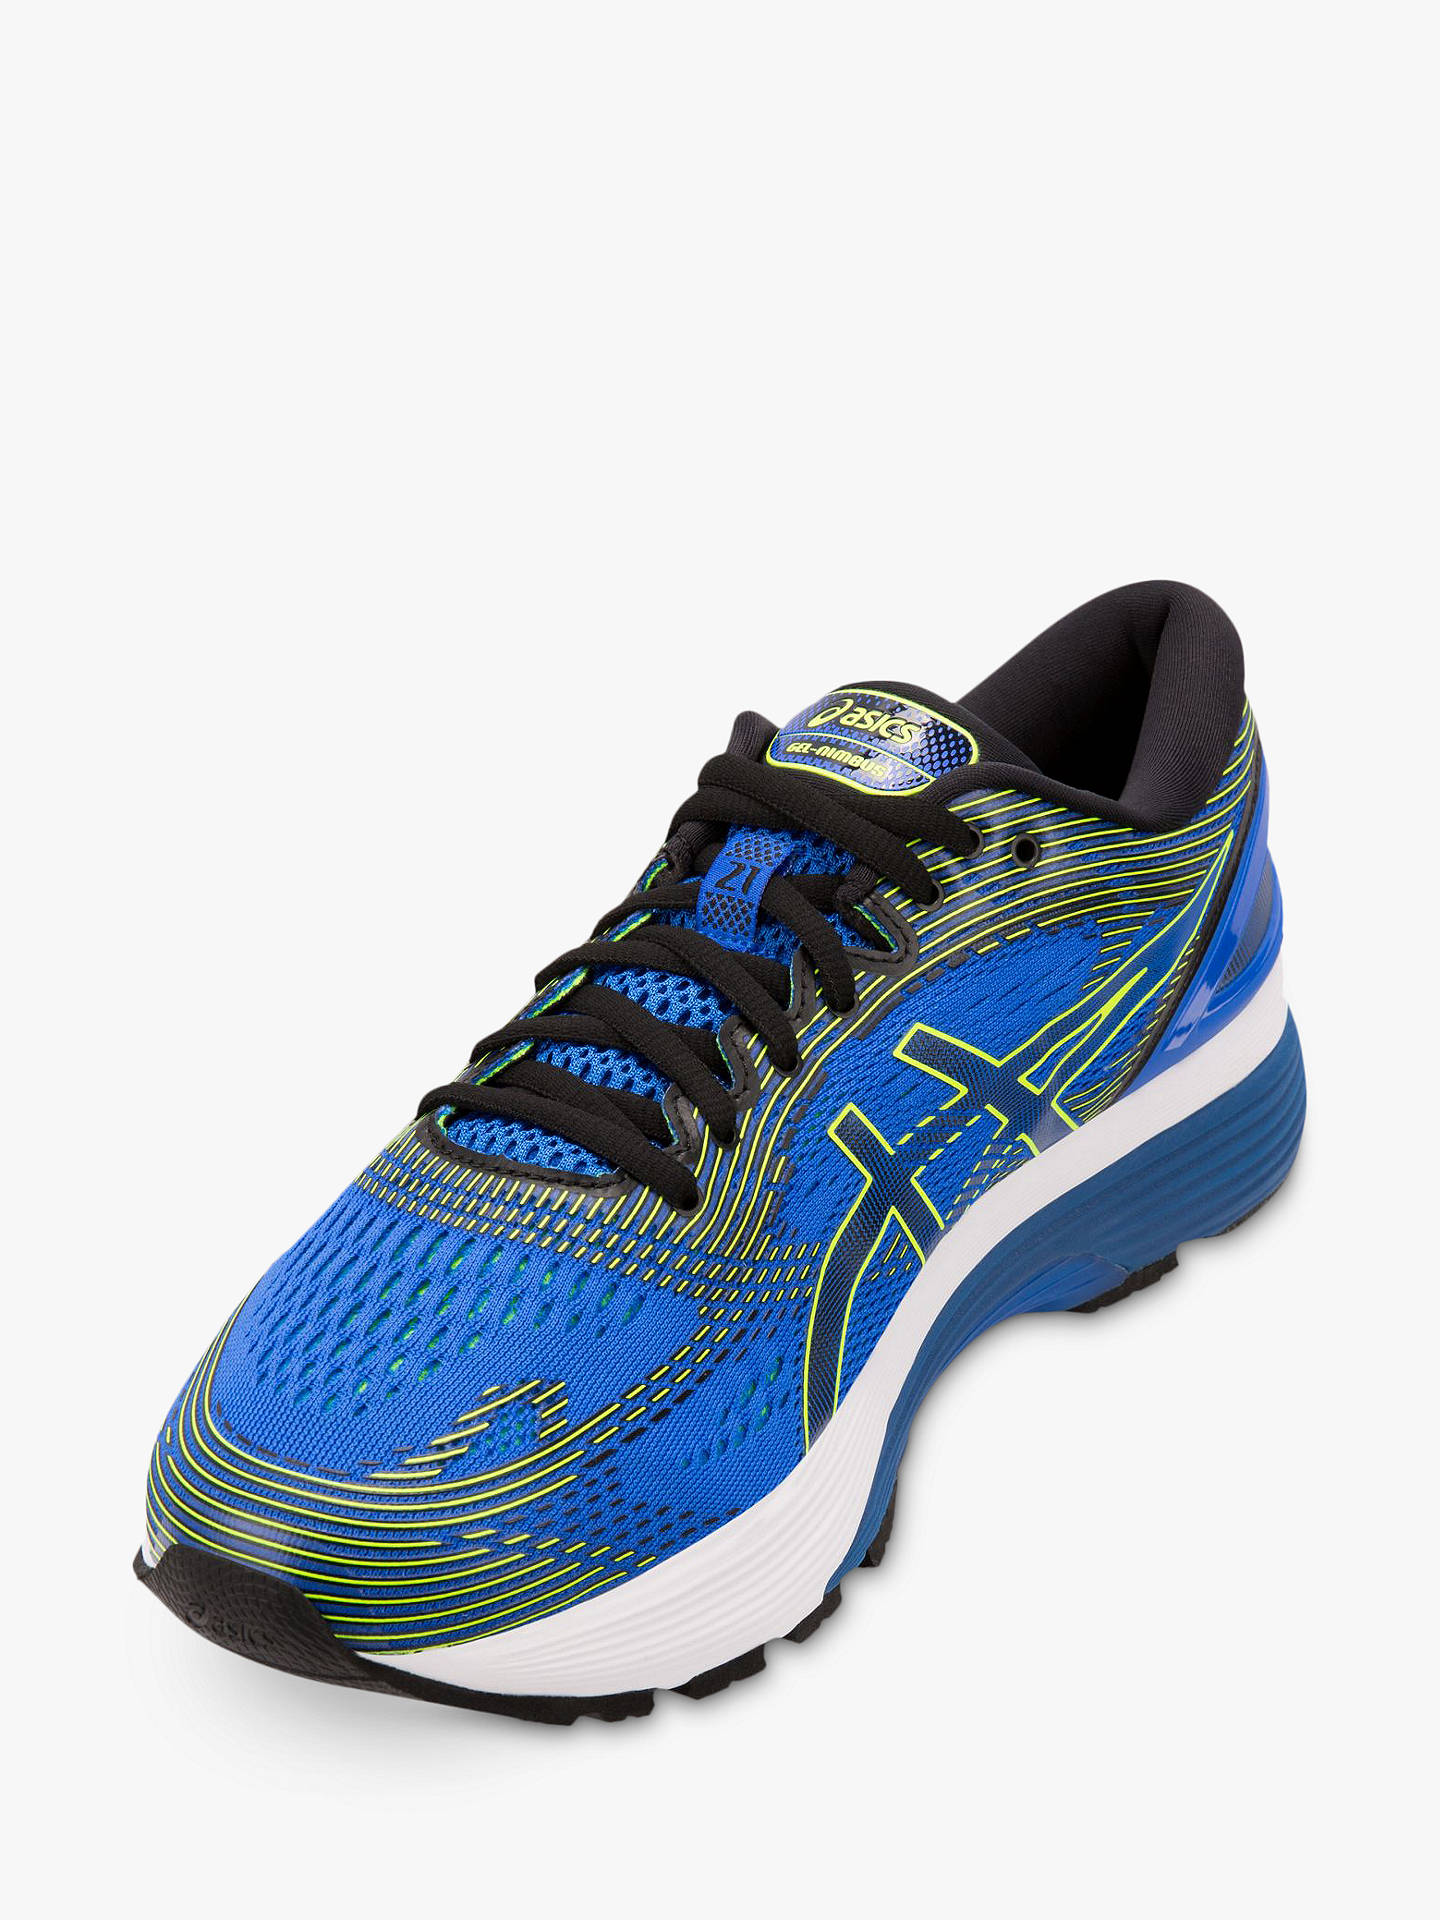 3e368bd3bd ASICS GEL-NIMBUS 21 Men's Running Shoes at John Lewis & Partners